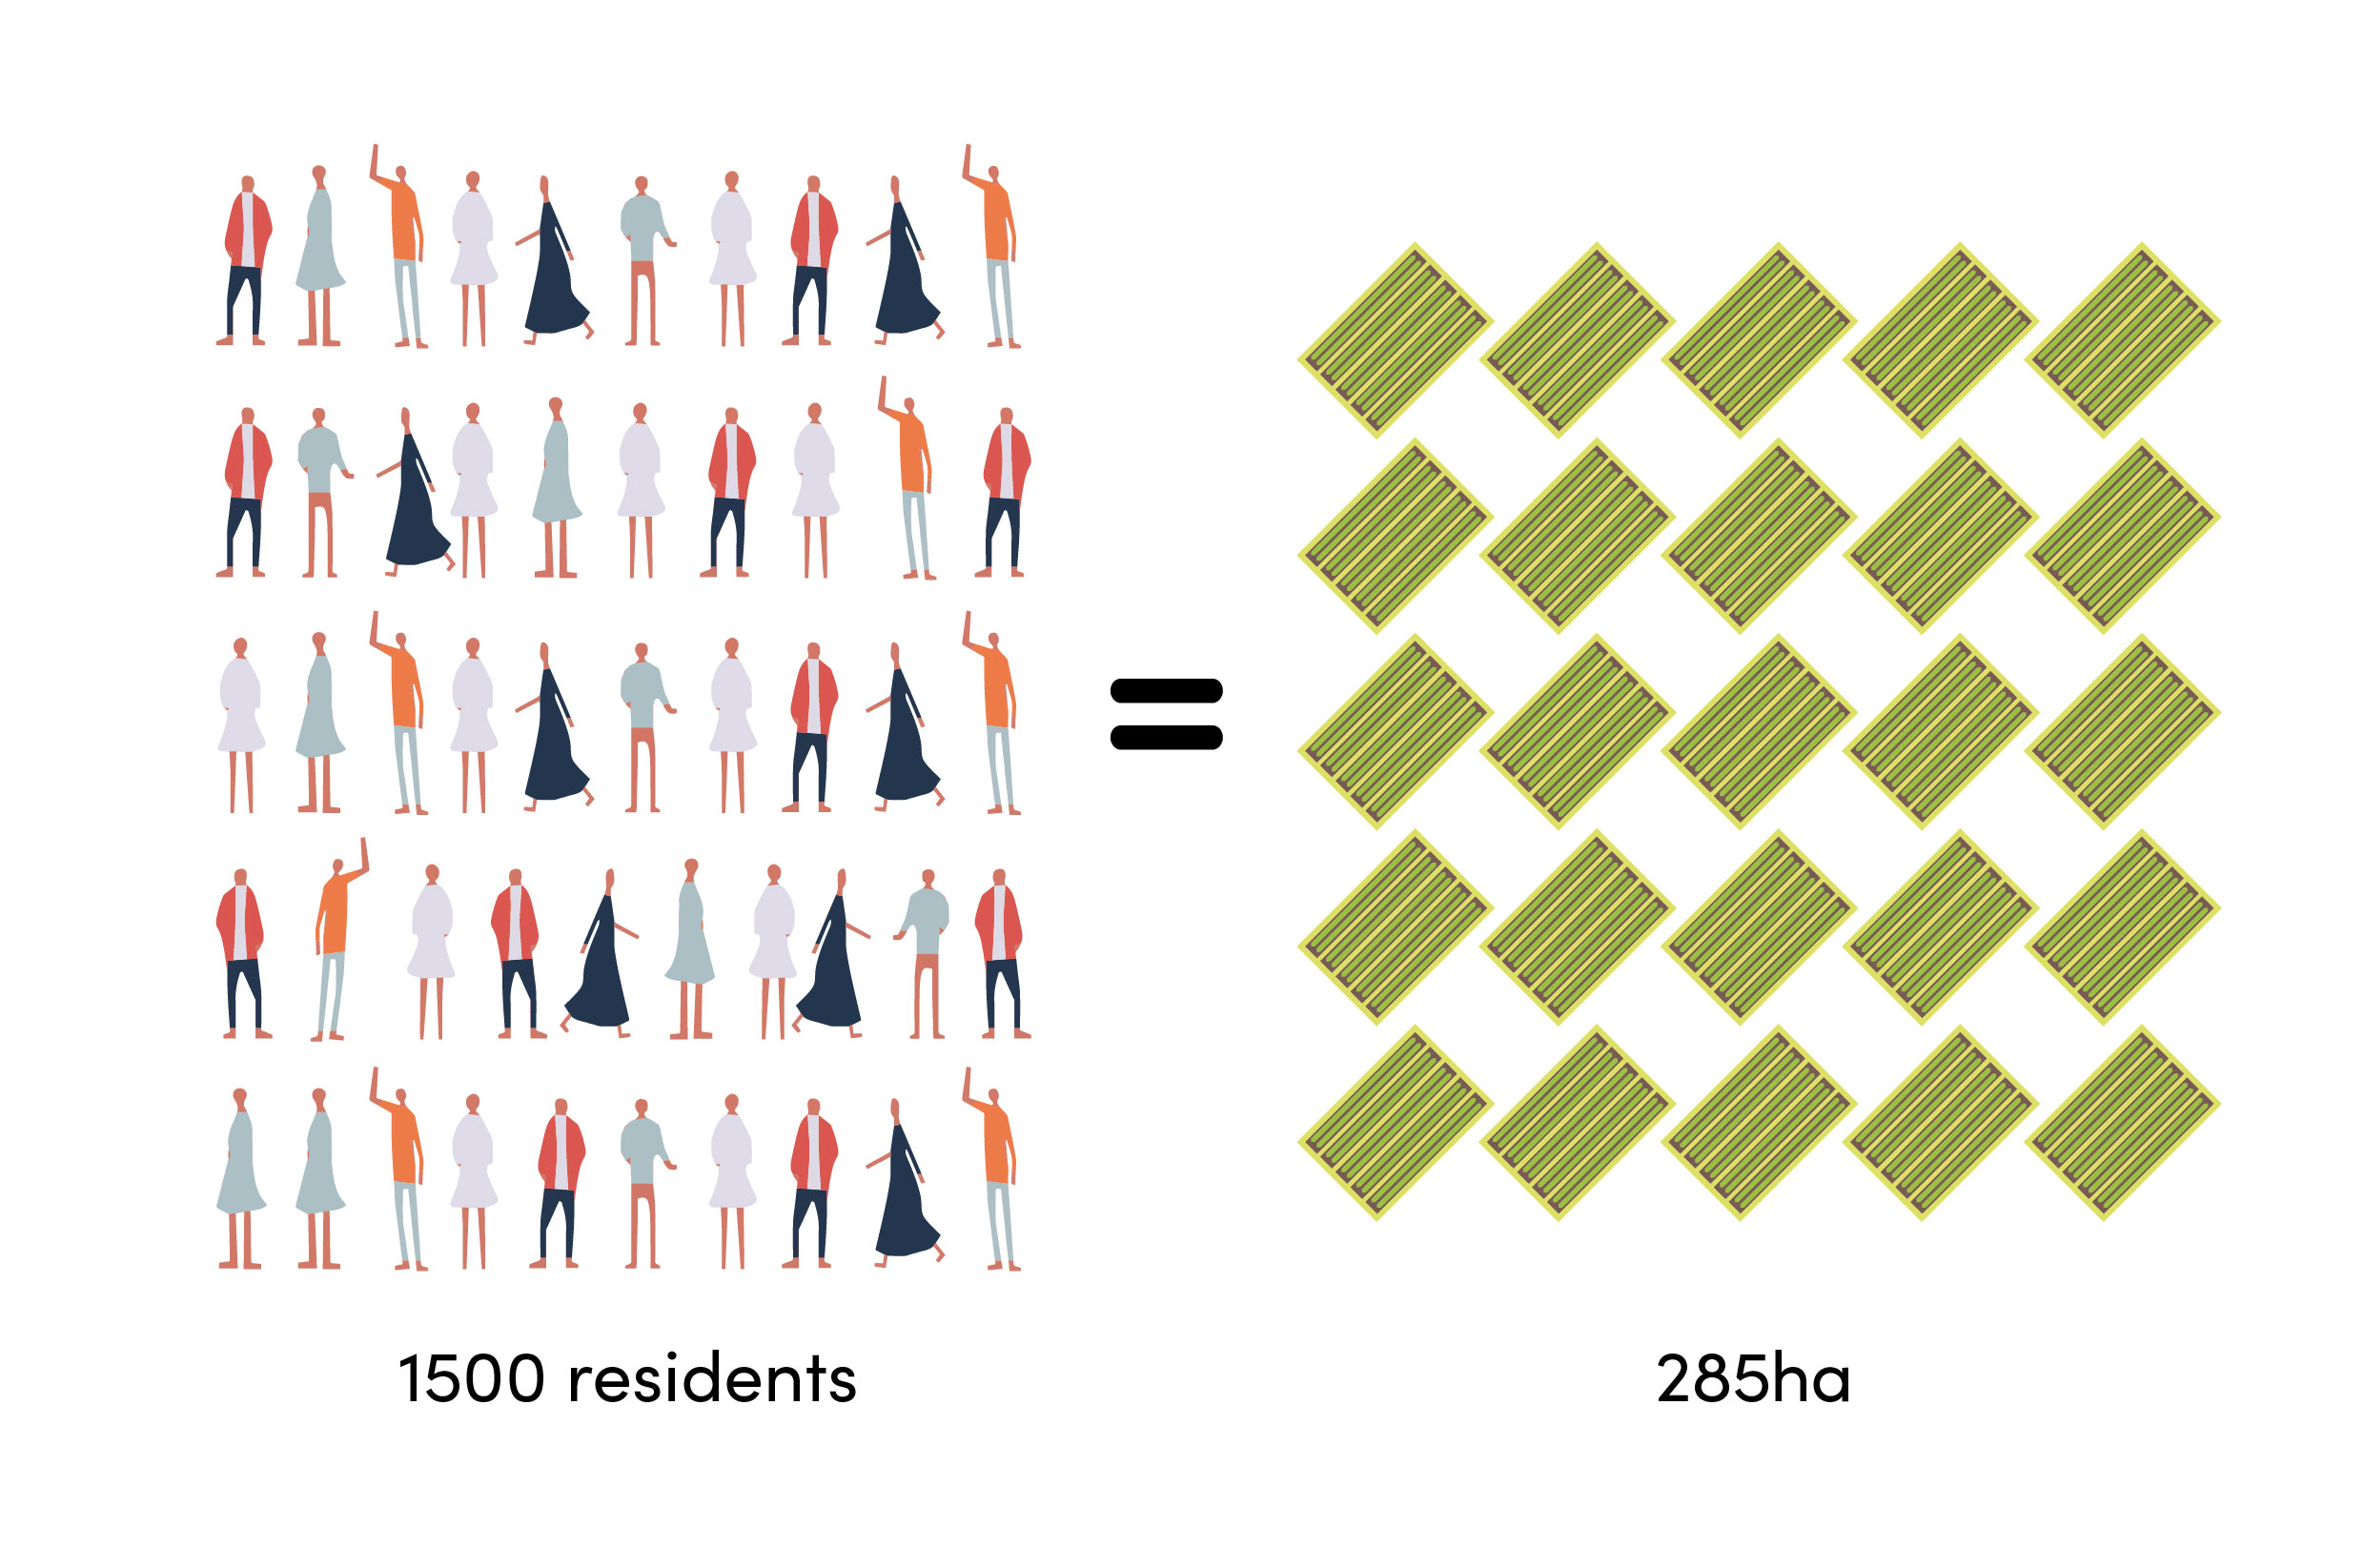 Using conventional agricultural methods it would require 285 ha to feed 1500 people. By using modern agricultural technologies it's possible to provide 75 per cent of a resident's diet in just 10sqm..